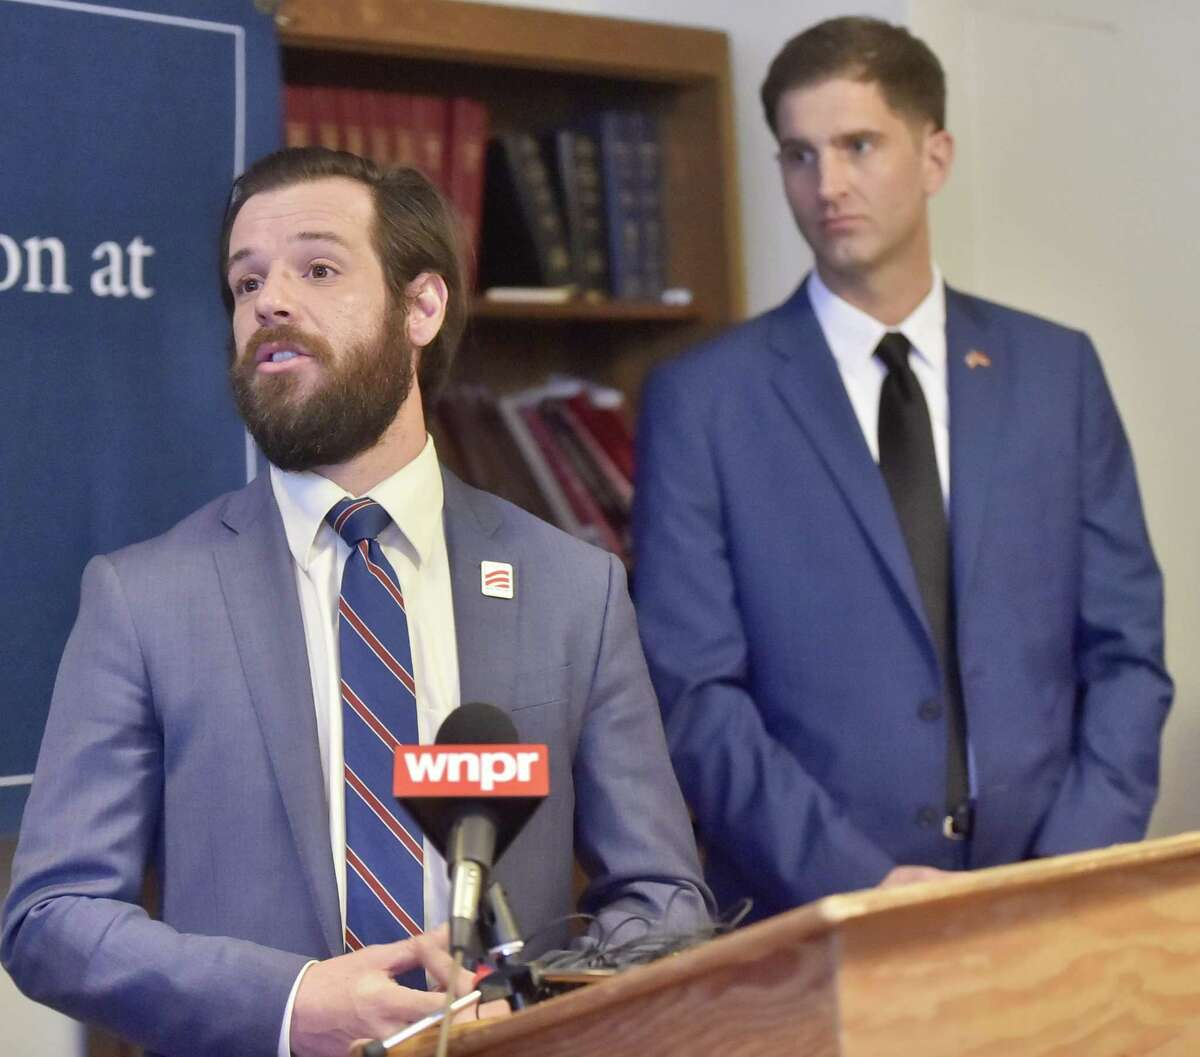 Marine veteran Tom Burke, 28, left, and attorney Tyson Manker, 36, a veterans advocate and Marine veteran, at a news conference at Yale Law School Friday.